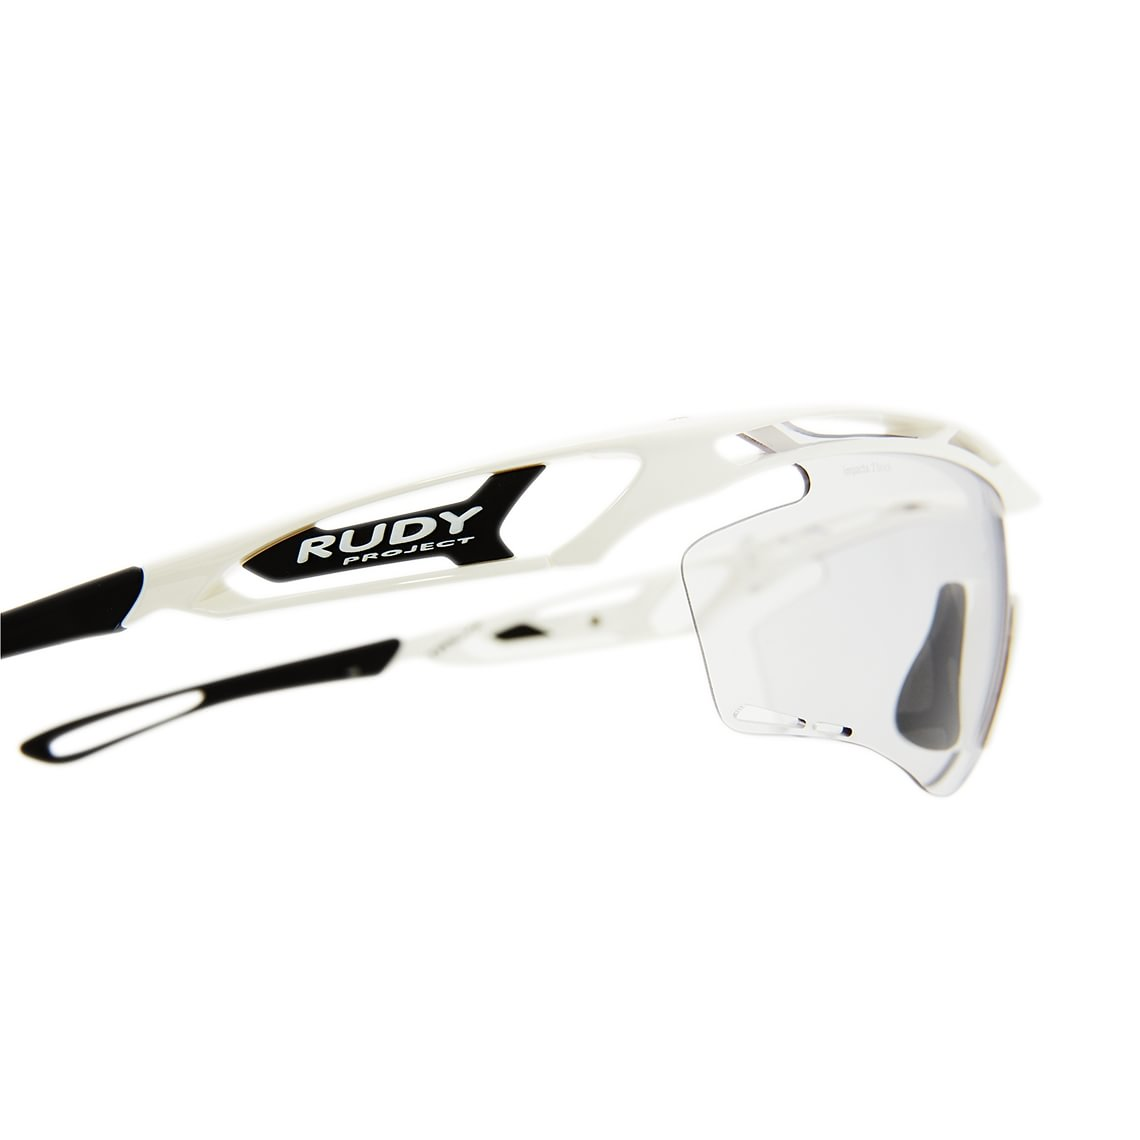 Rudy Project Tralyx Impx Photo 2black SP397369-0001